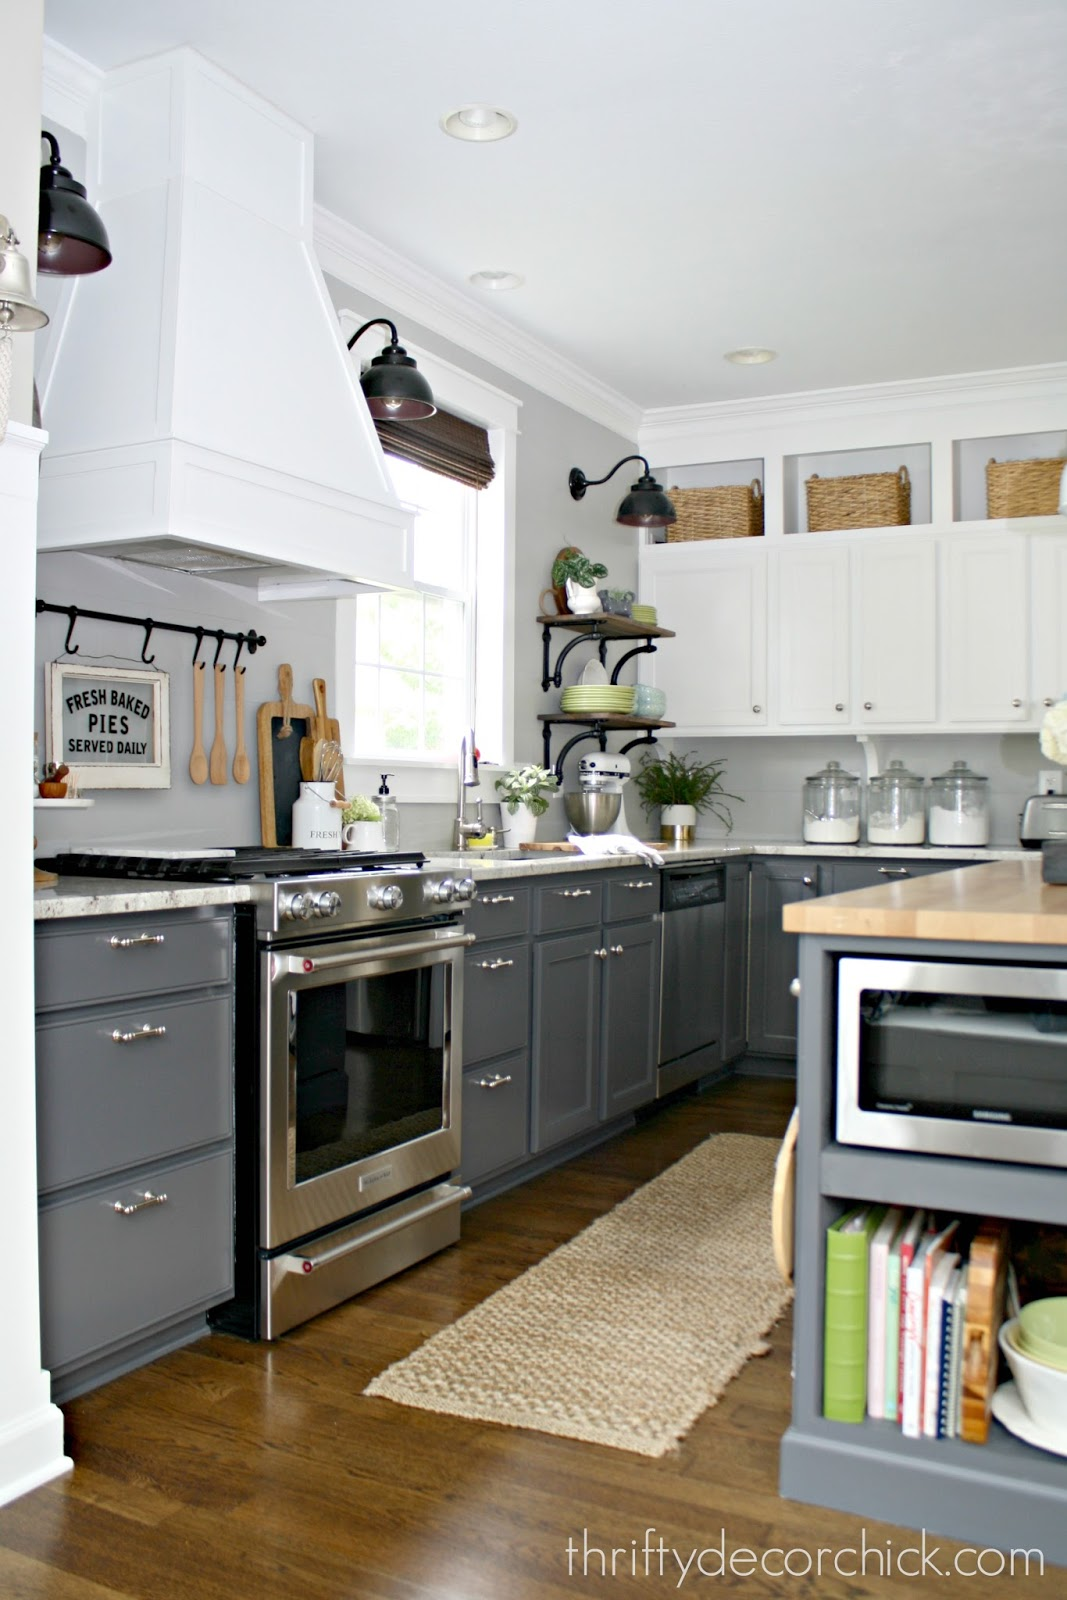 Diy Extend Kitchen Cabinets A Diy Kitchen Renovation Update Nine Months Later From